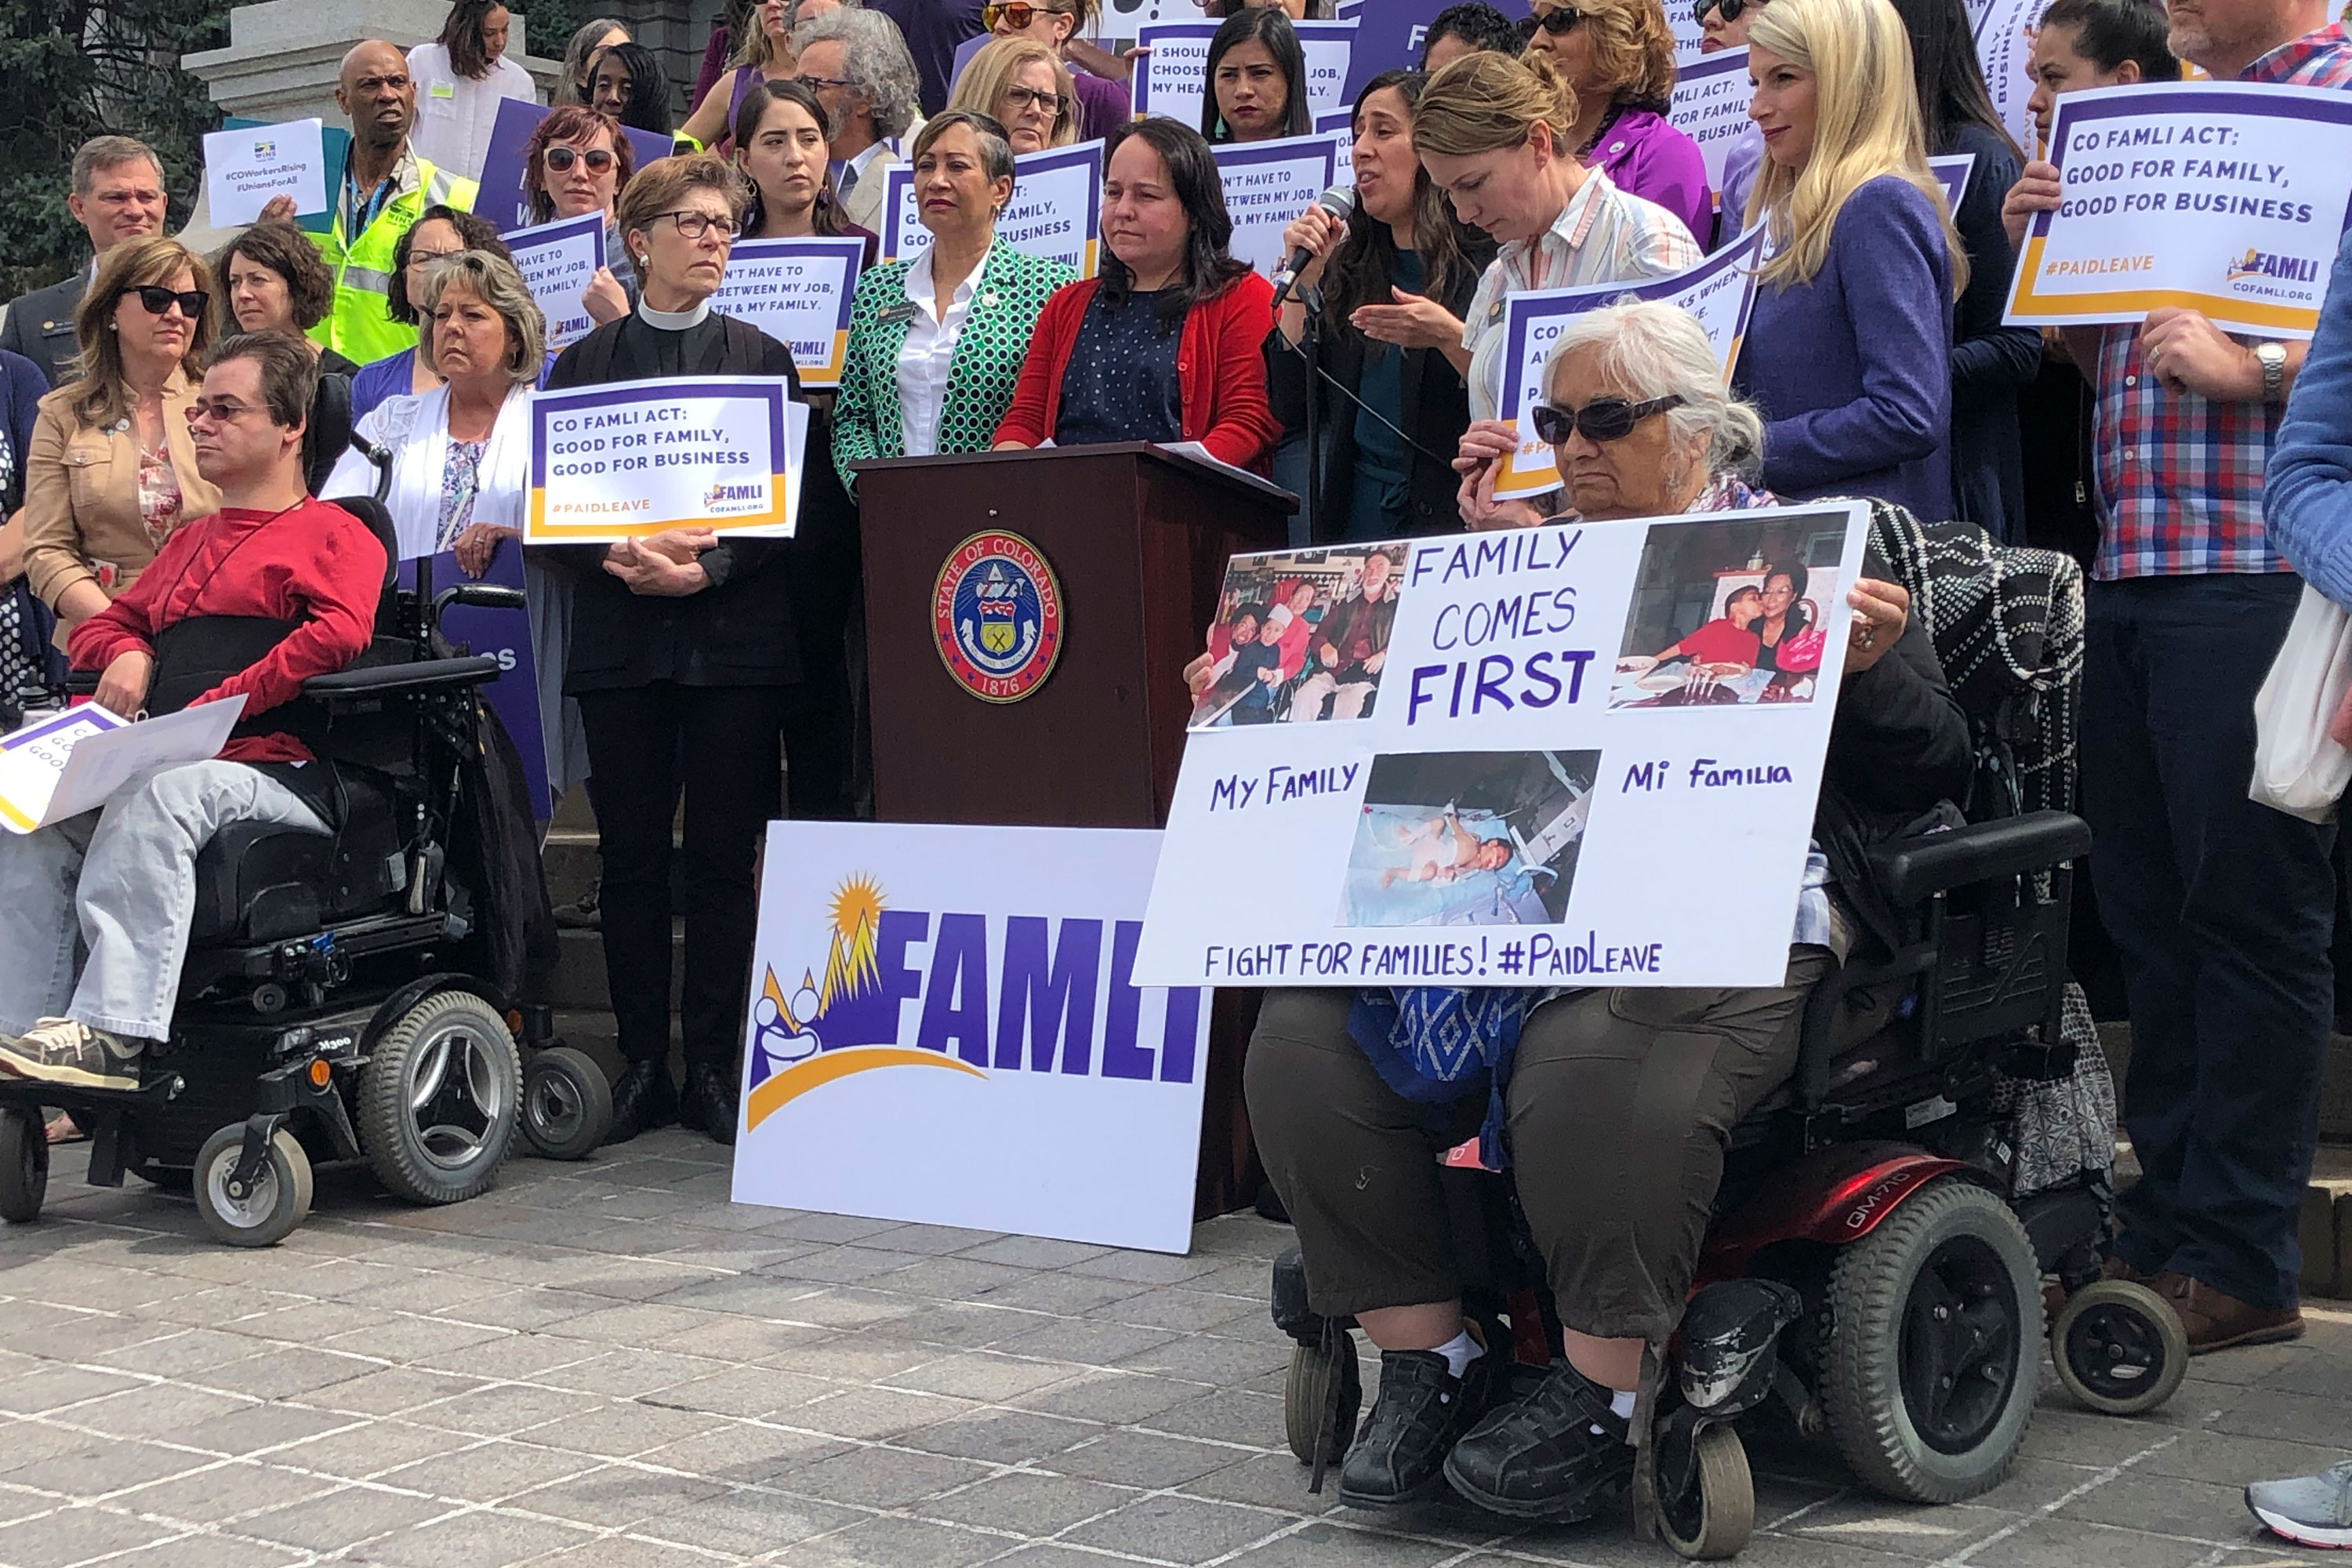 <p>Colorado Democratic Sens. Angela Williams and Faith Winter listen behind the podium as activist Judith Marquez speaks in favor of their paid family leave bill at a rally outside the statehouse on Tuesday, April 9, 2019, in Denver. </p>